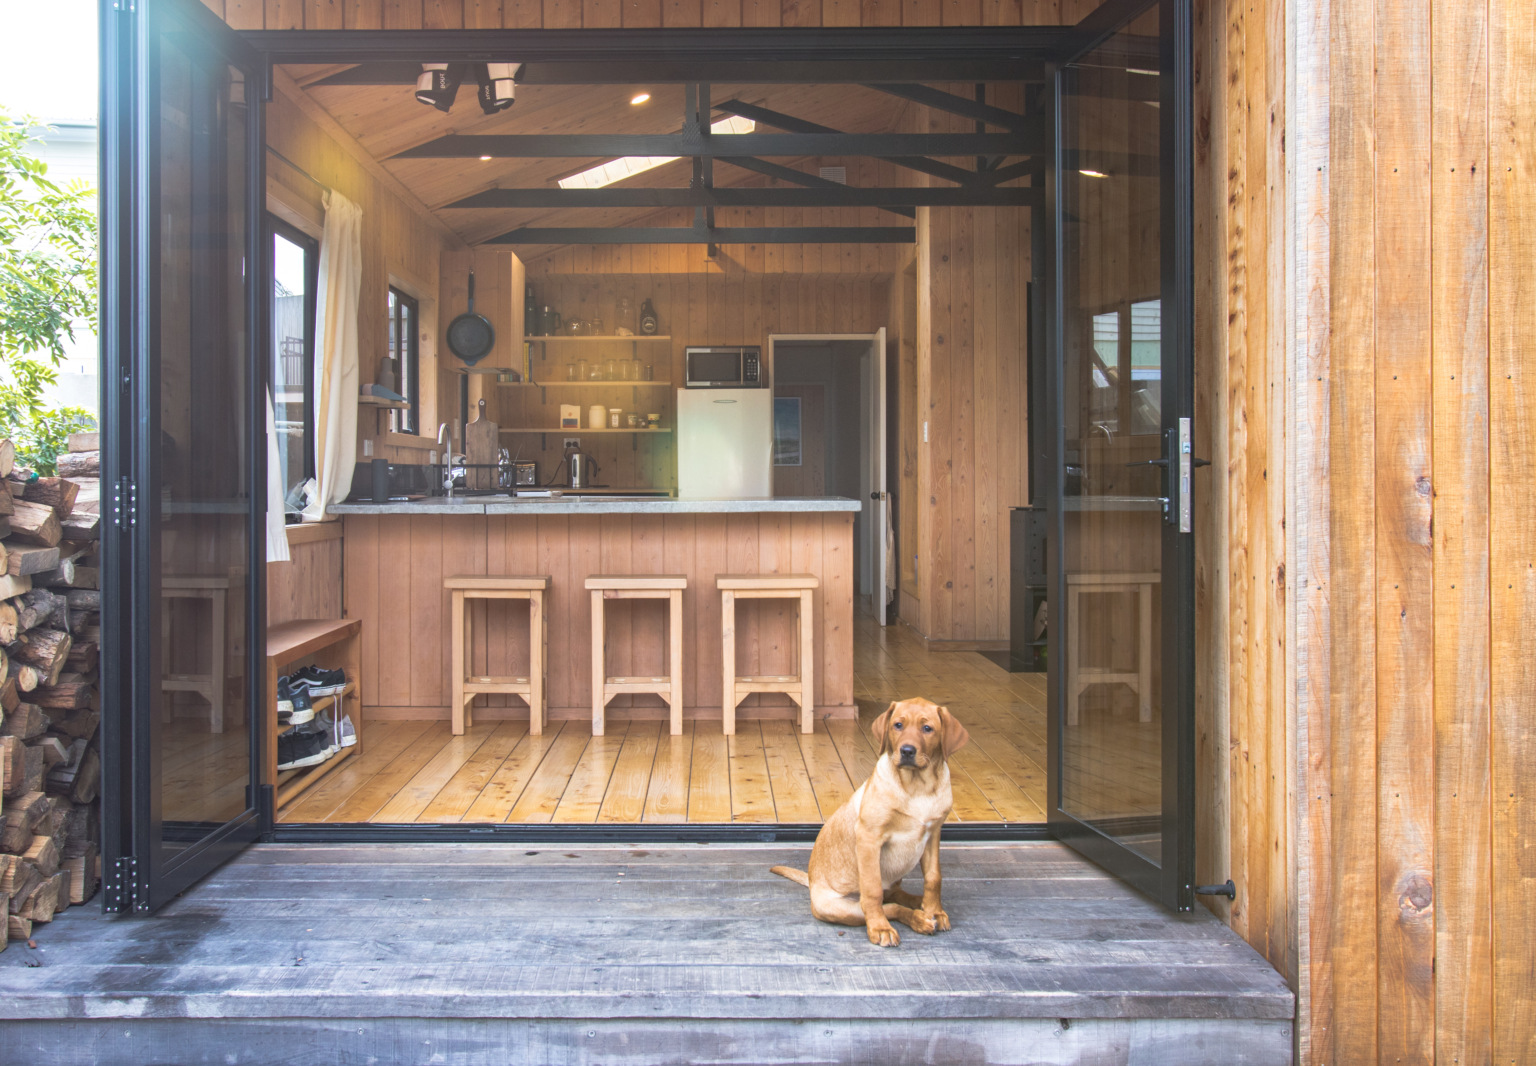 The DIY Makeover: George and Willy's Urban Cabin (Created from a Tiny 1991 Suburban House)